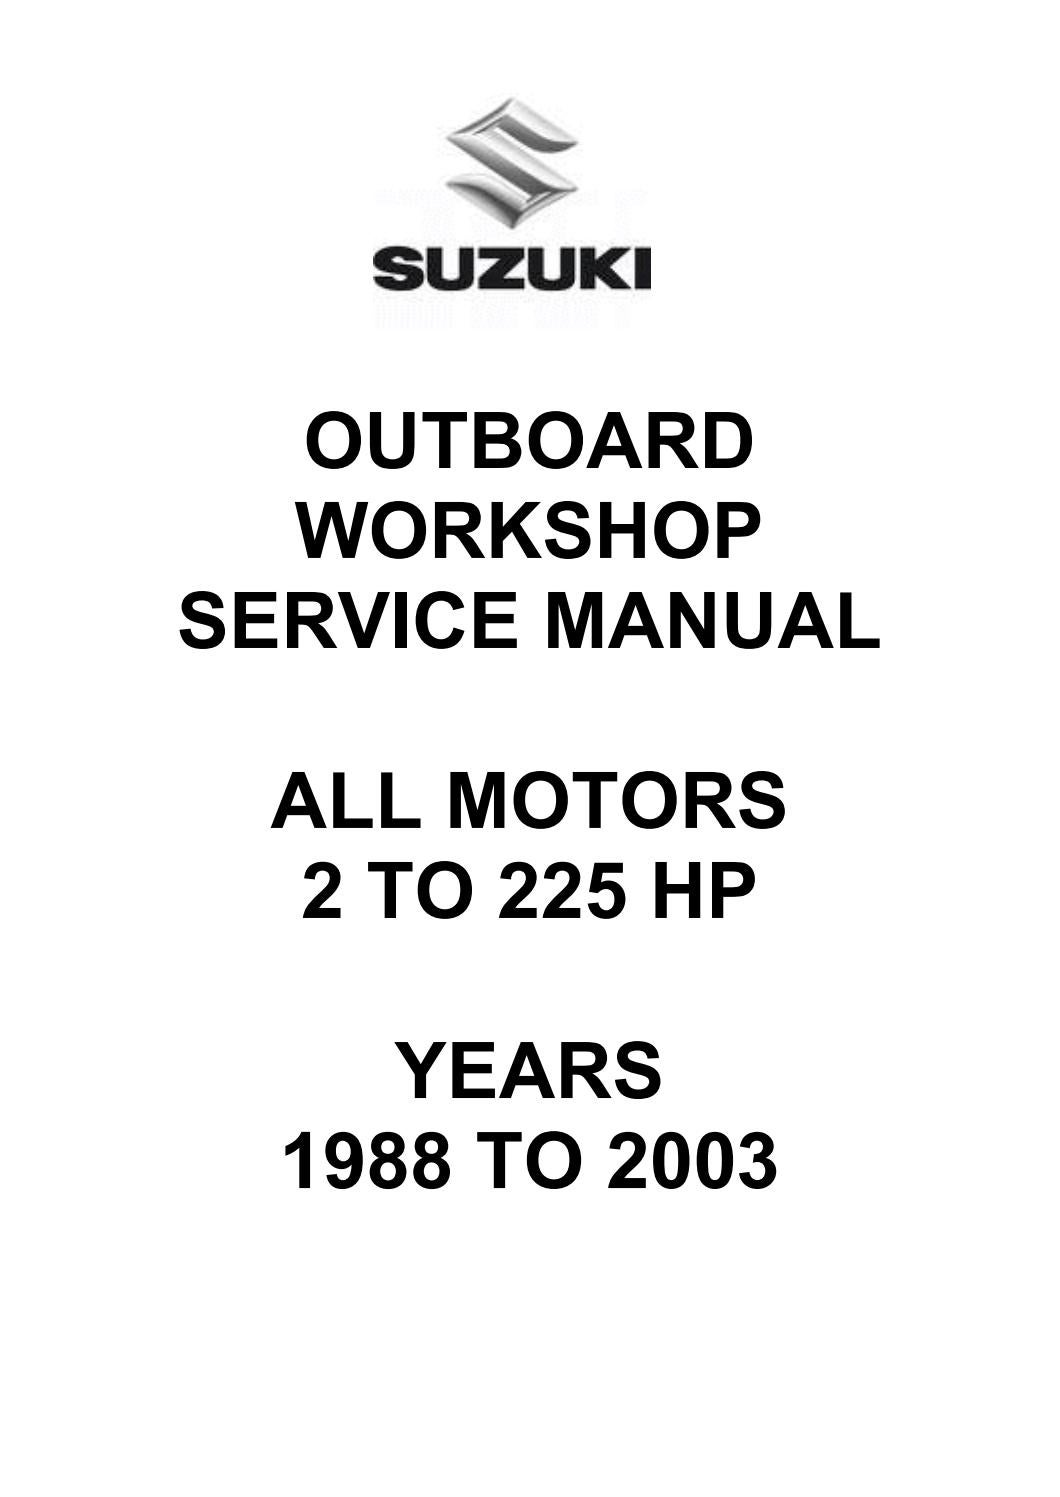 hight resolution of  array suzuki outboard workshop service manual all motors by glsense issuu rh issuu